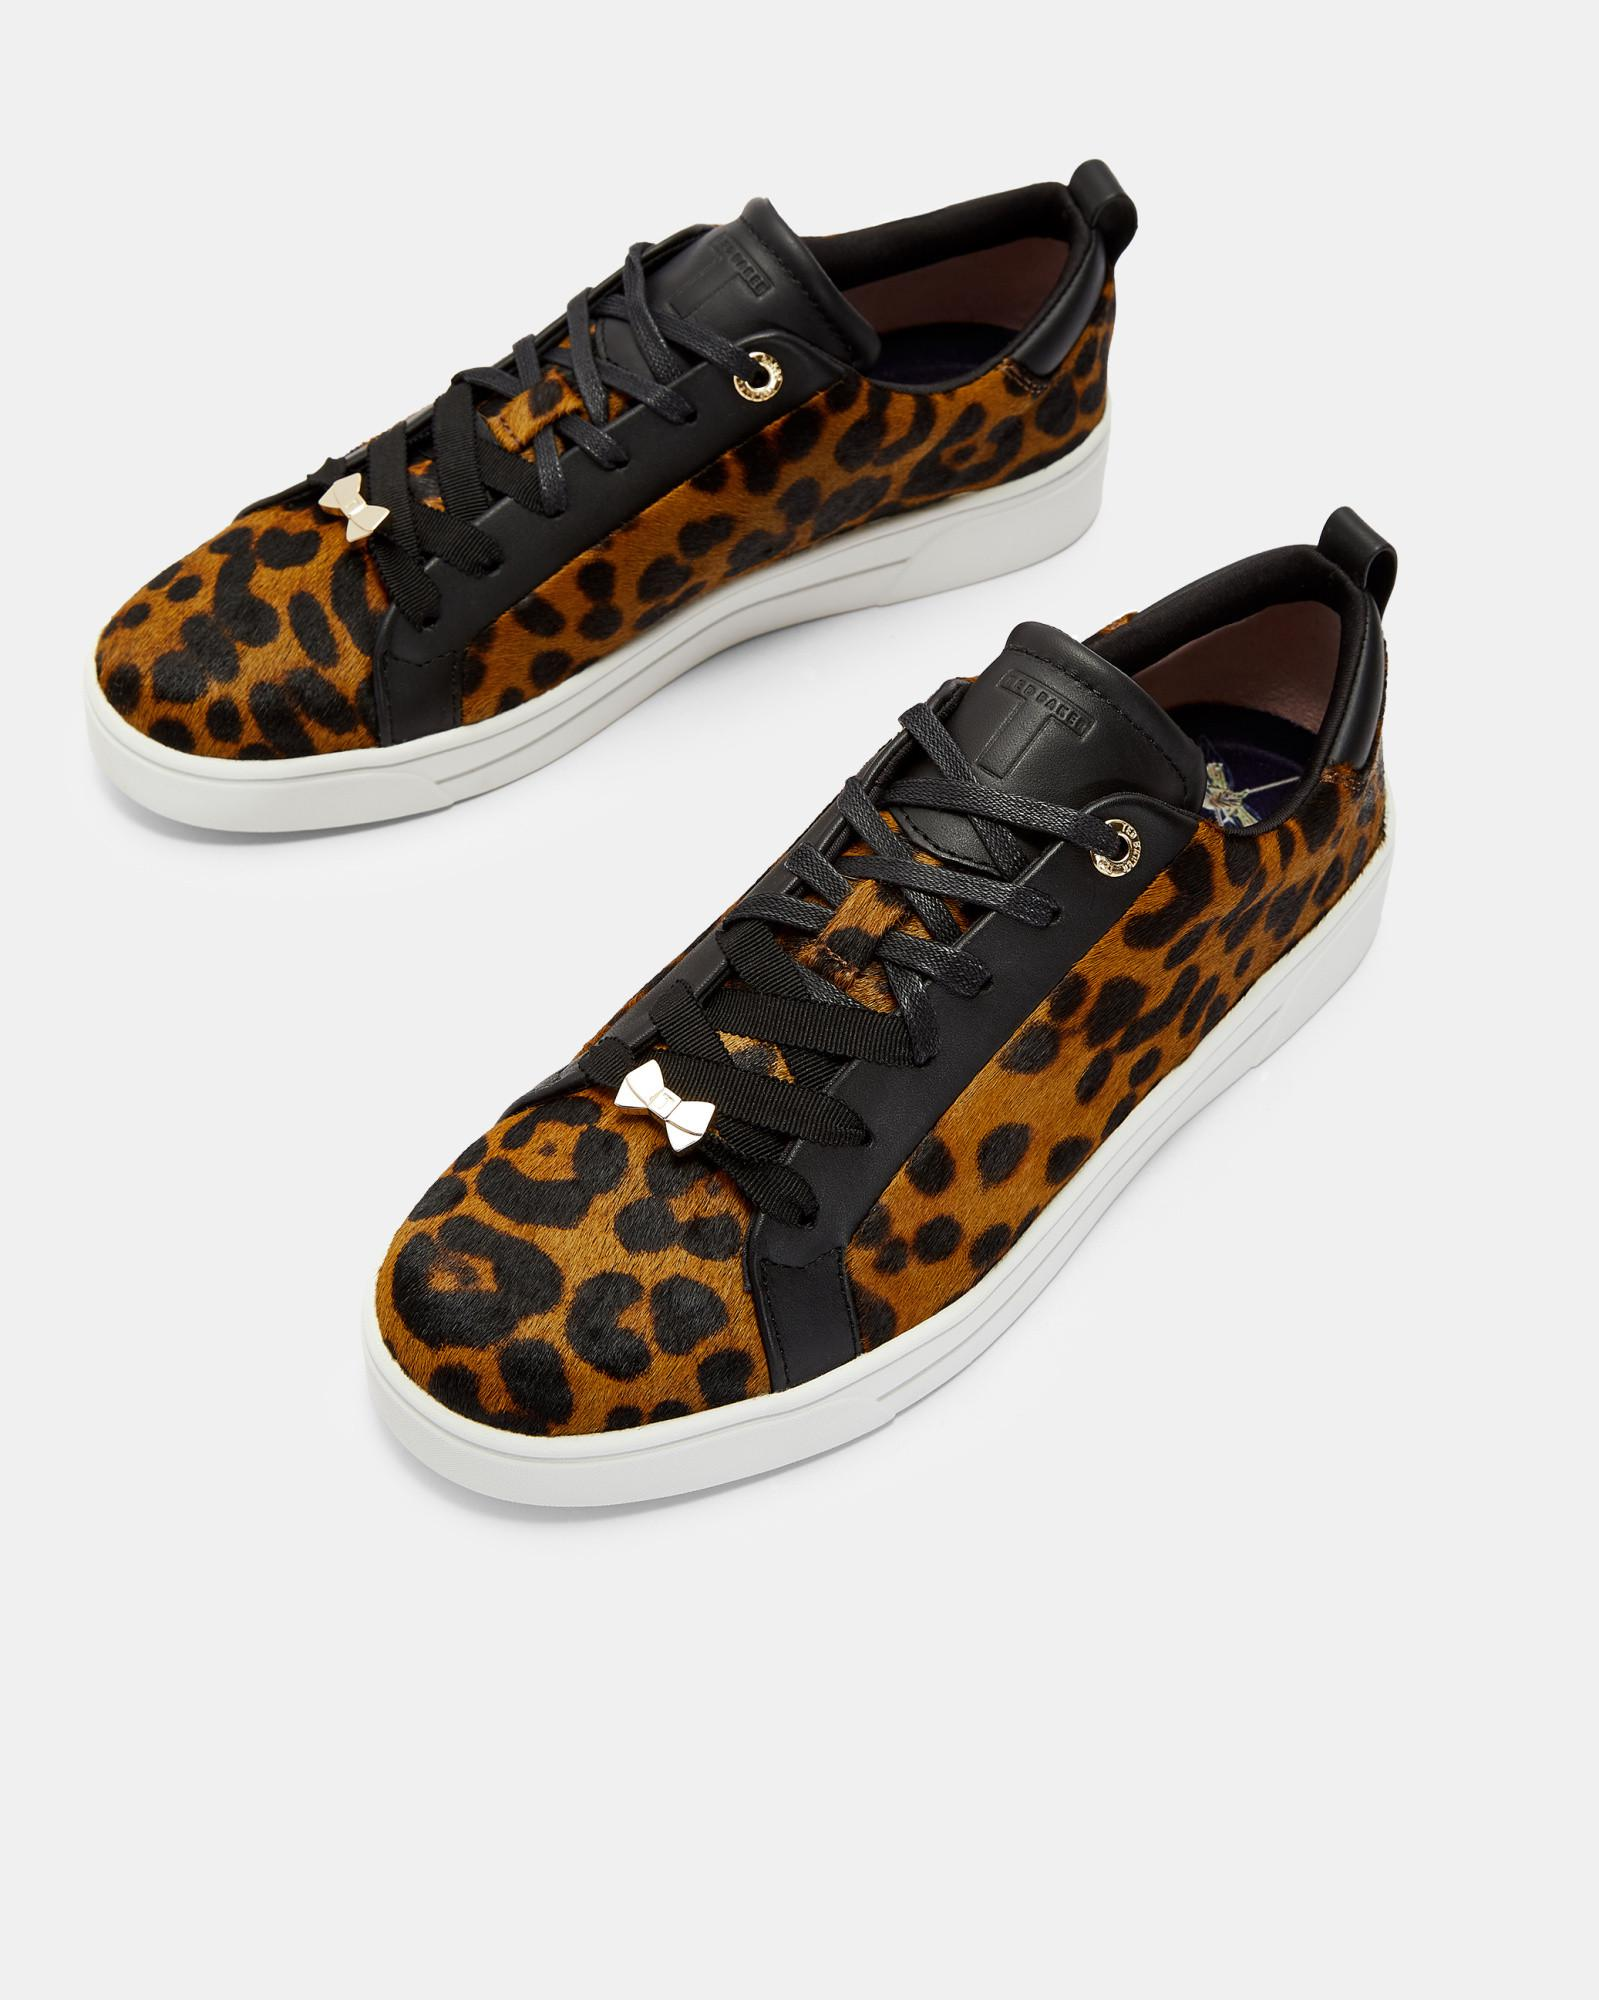 03d32a91fa0df Lyst - Ted Baker Leopard Print Trainers in Black